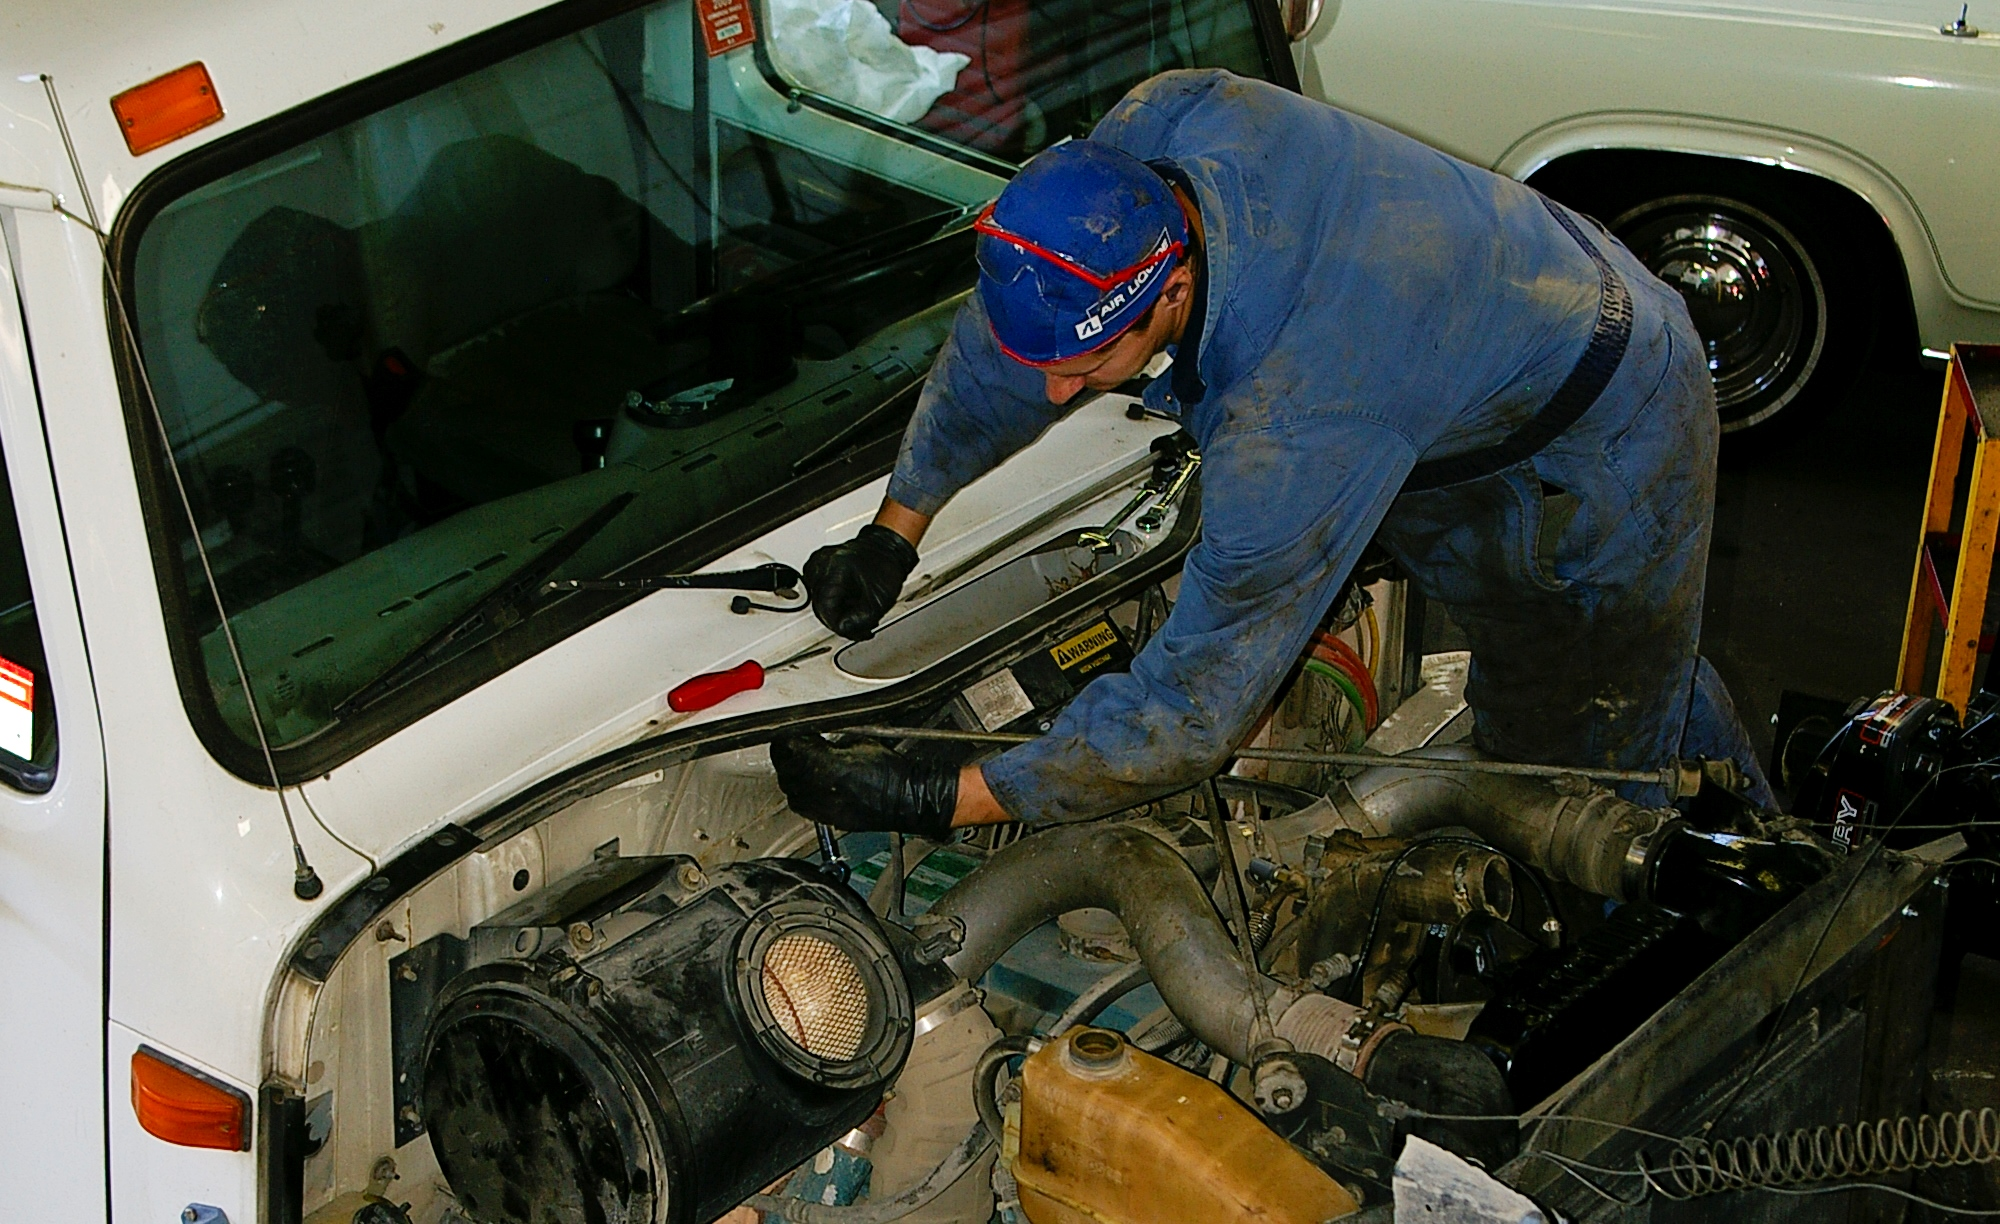 Brake Service The Parkway Crew Inc Auto Repair Mechanic Engine Brakes Our Expert Specialists Will Inspect And Replace Your Braking System With Premium Parts Either Factory Or Equivalent